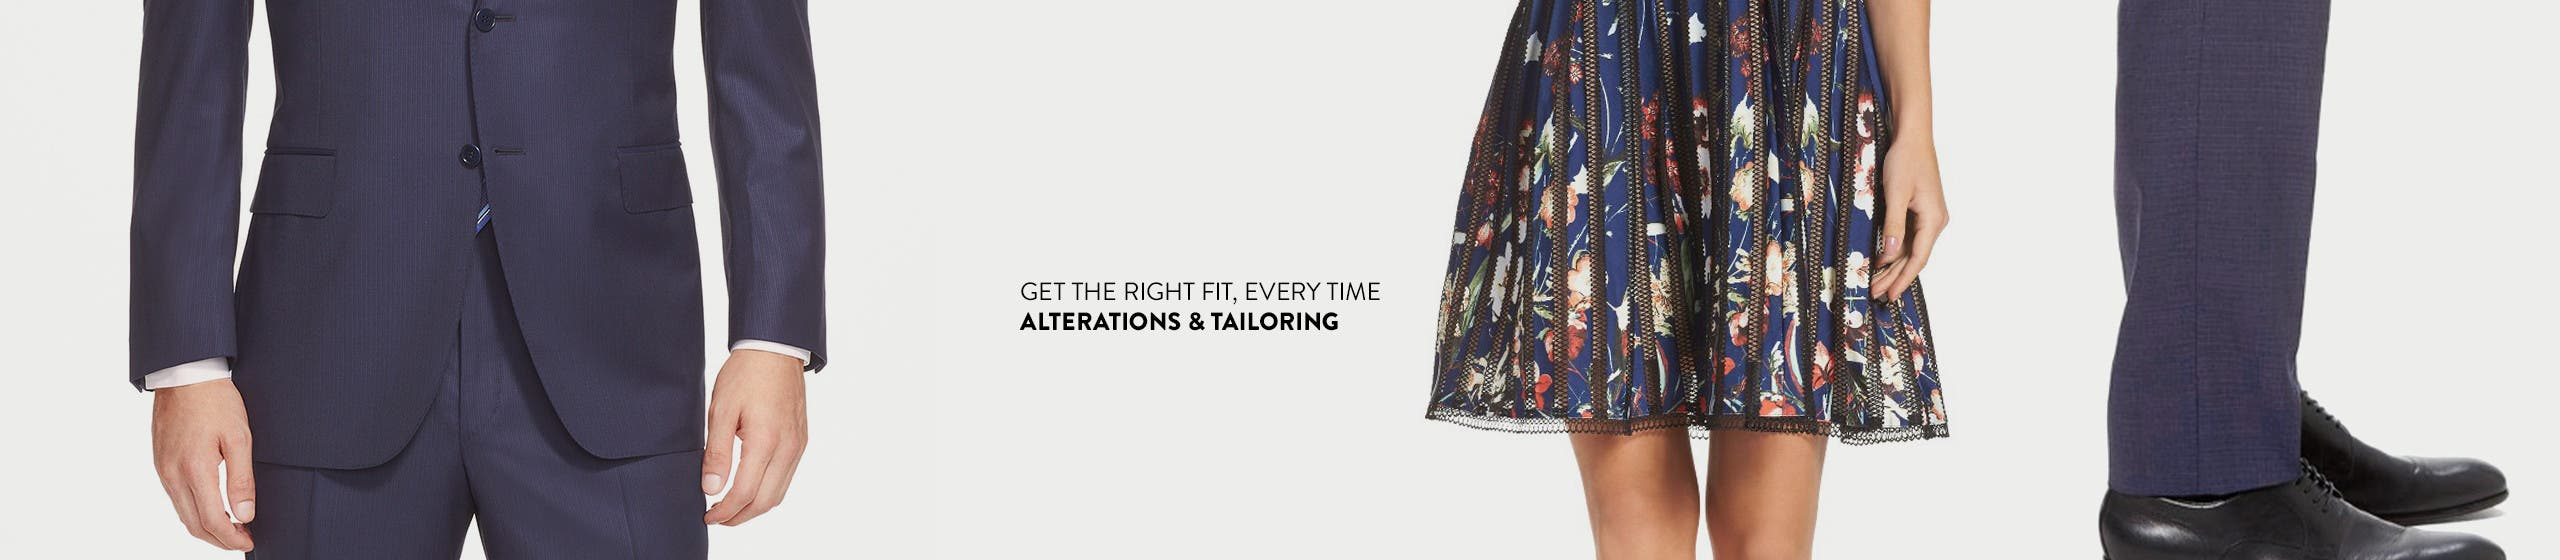 Get the right fit every time. Alterations & tailoring.